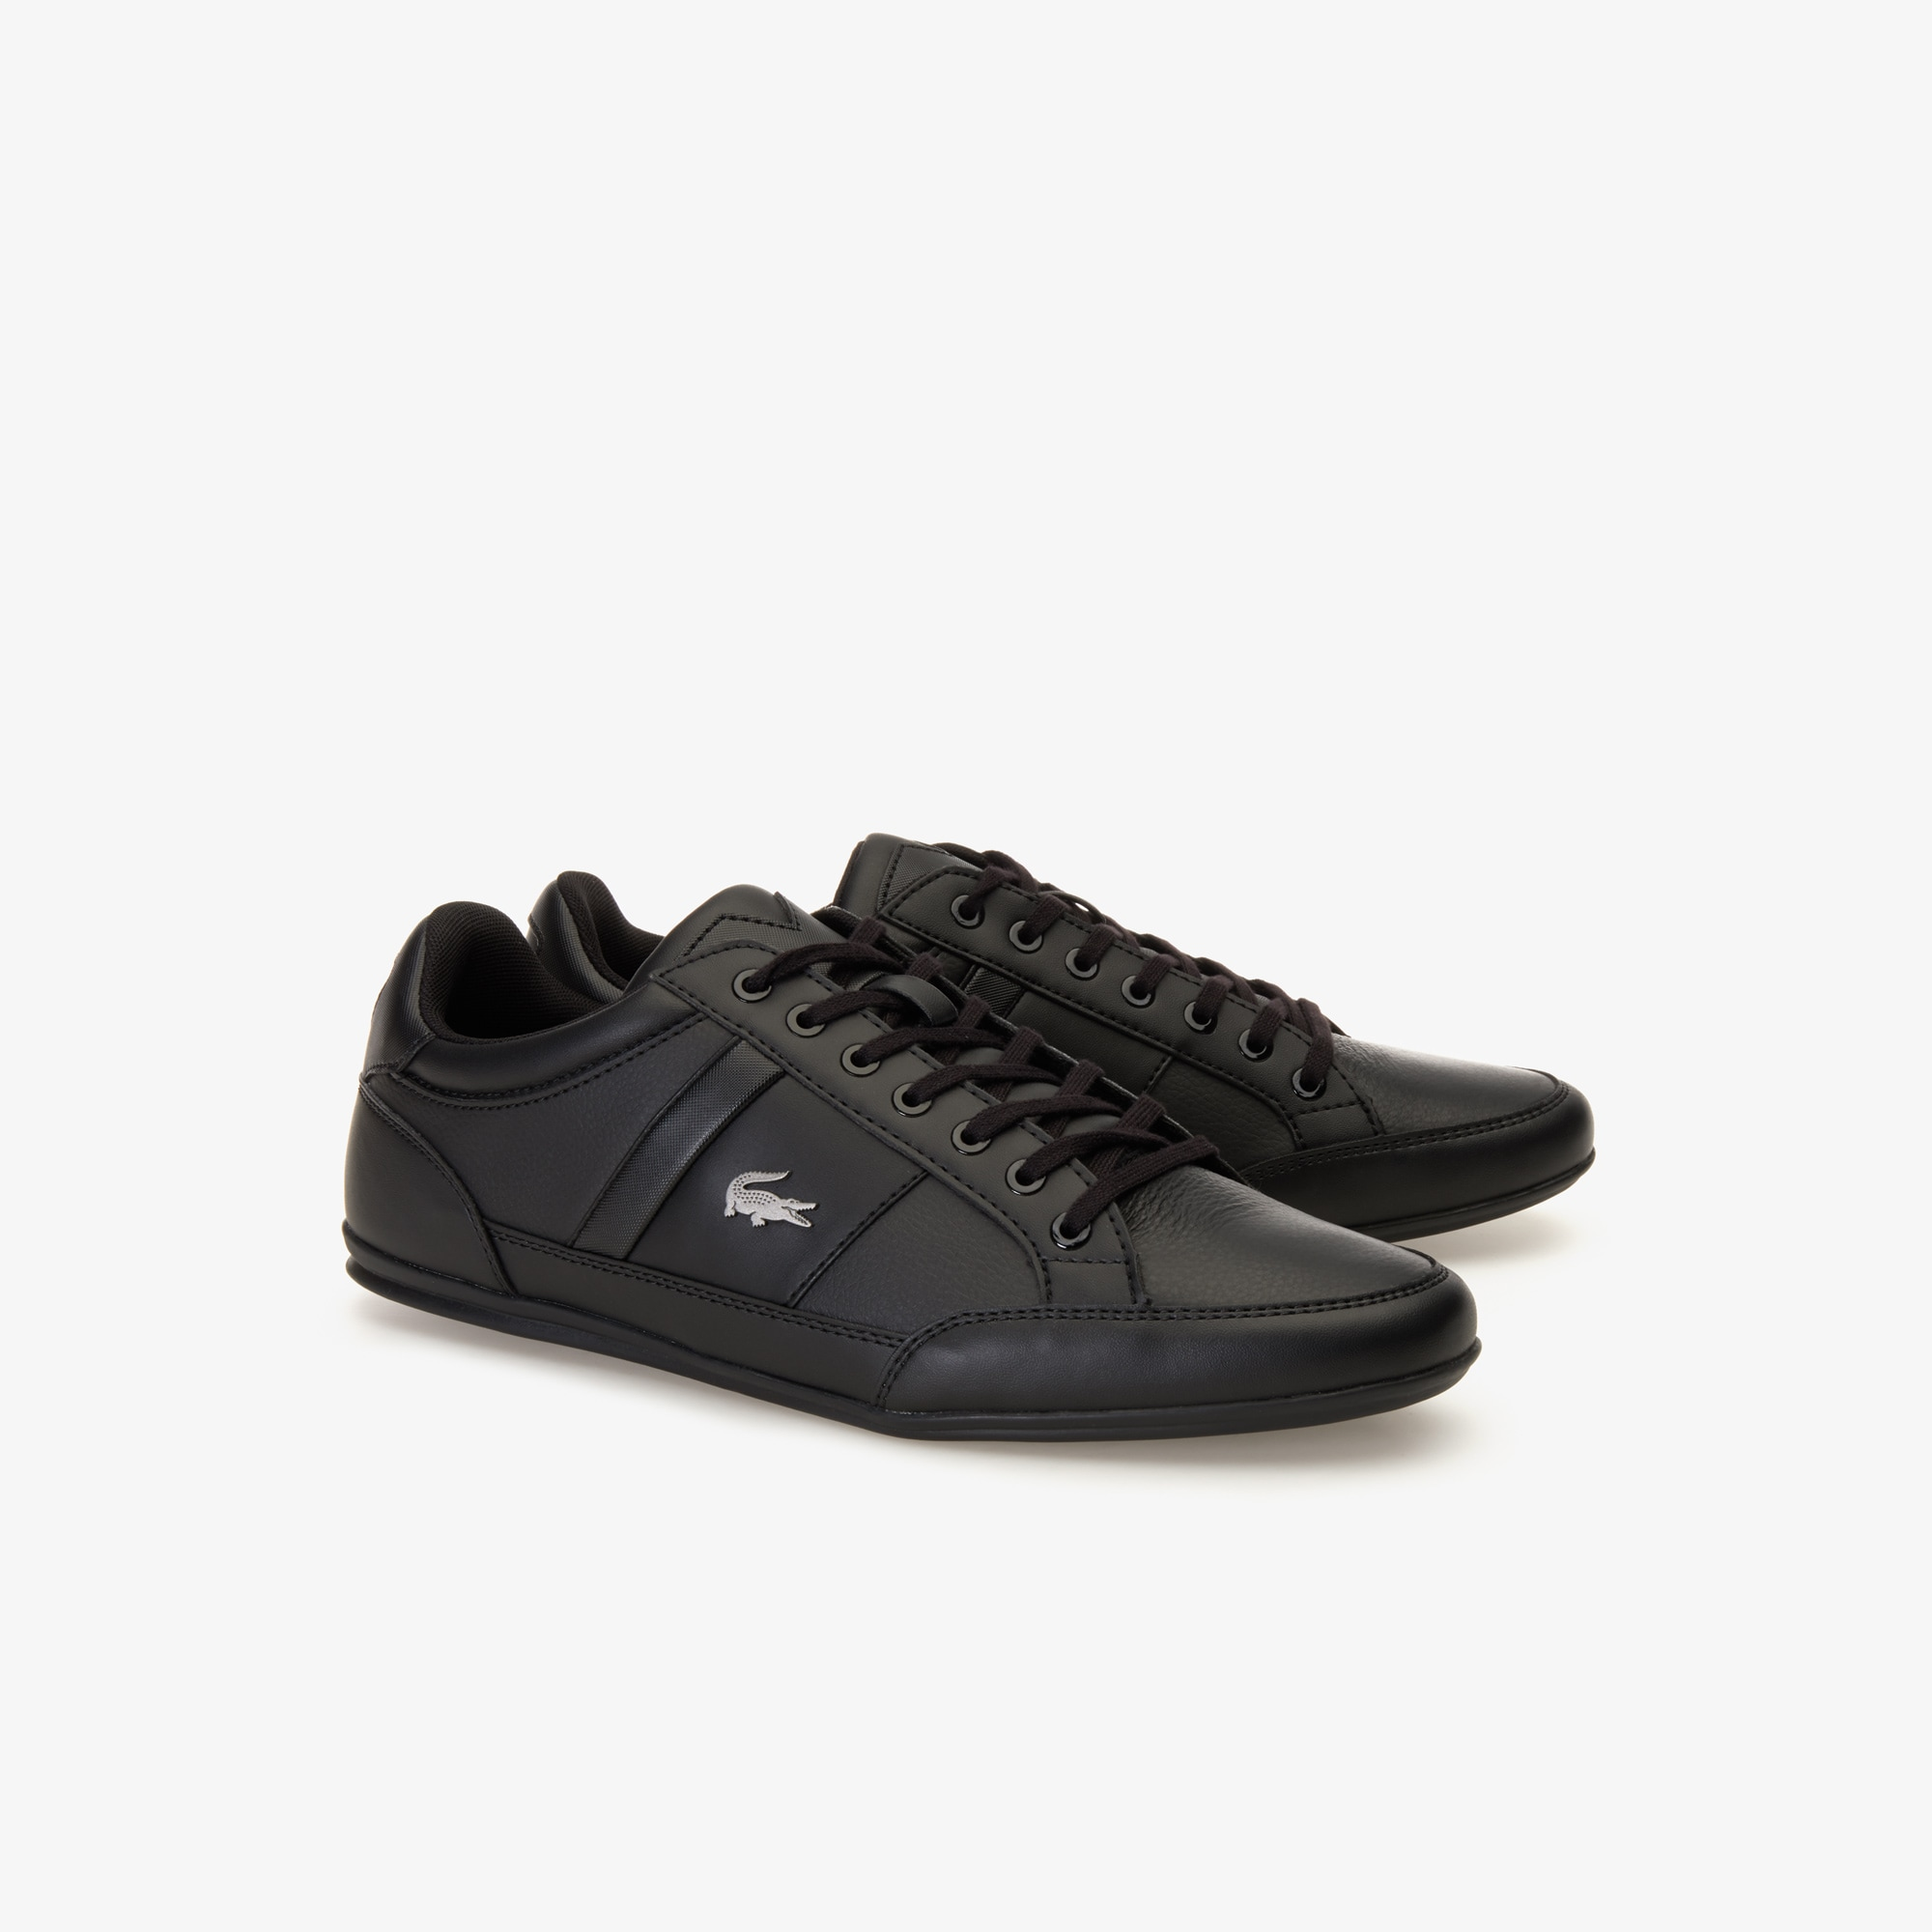 mens black leather lacoste trainers new